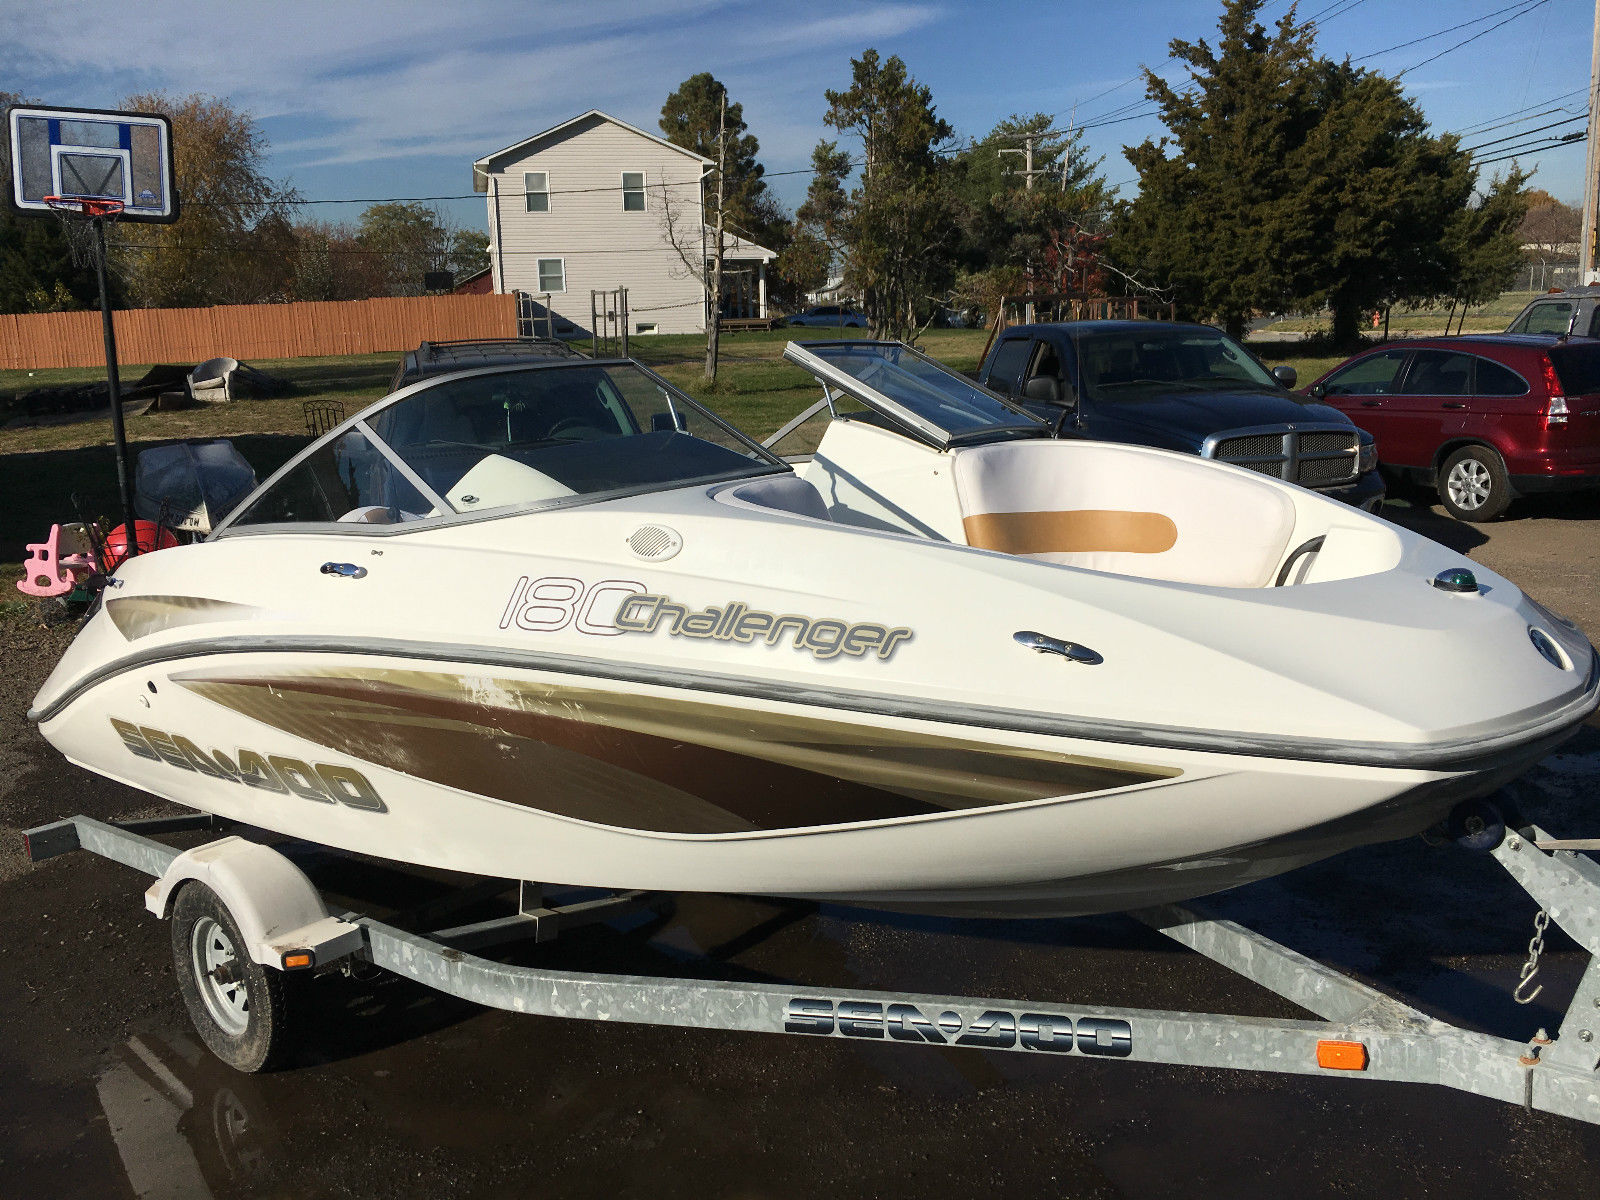 Sea Doo Challenger 180 2007 For Sale For 9 500 Boats